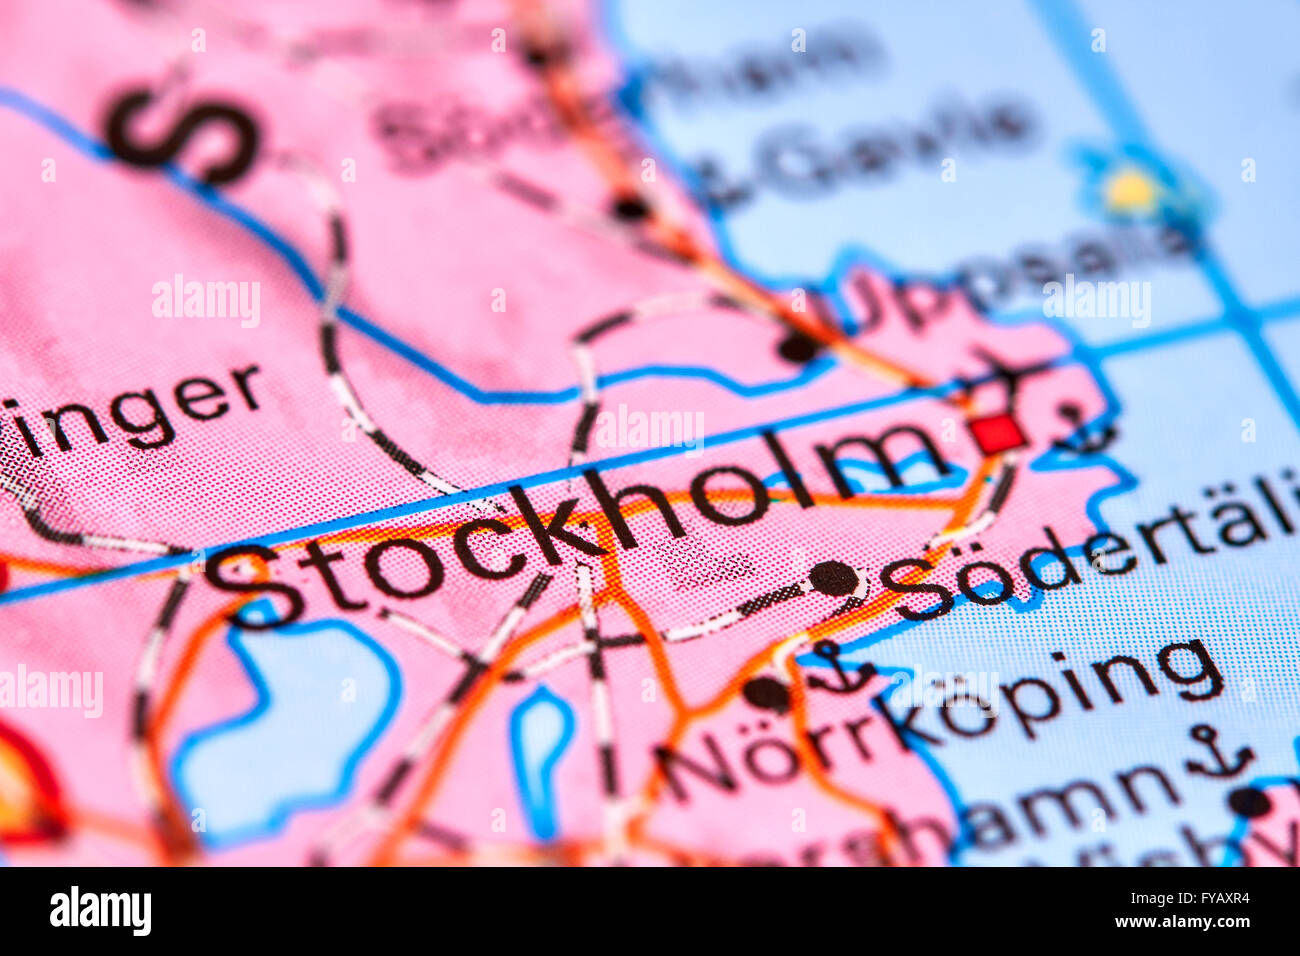 Stockholm Capital City Of Sweden On The World Map Stock Photo - Sweden map search